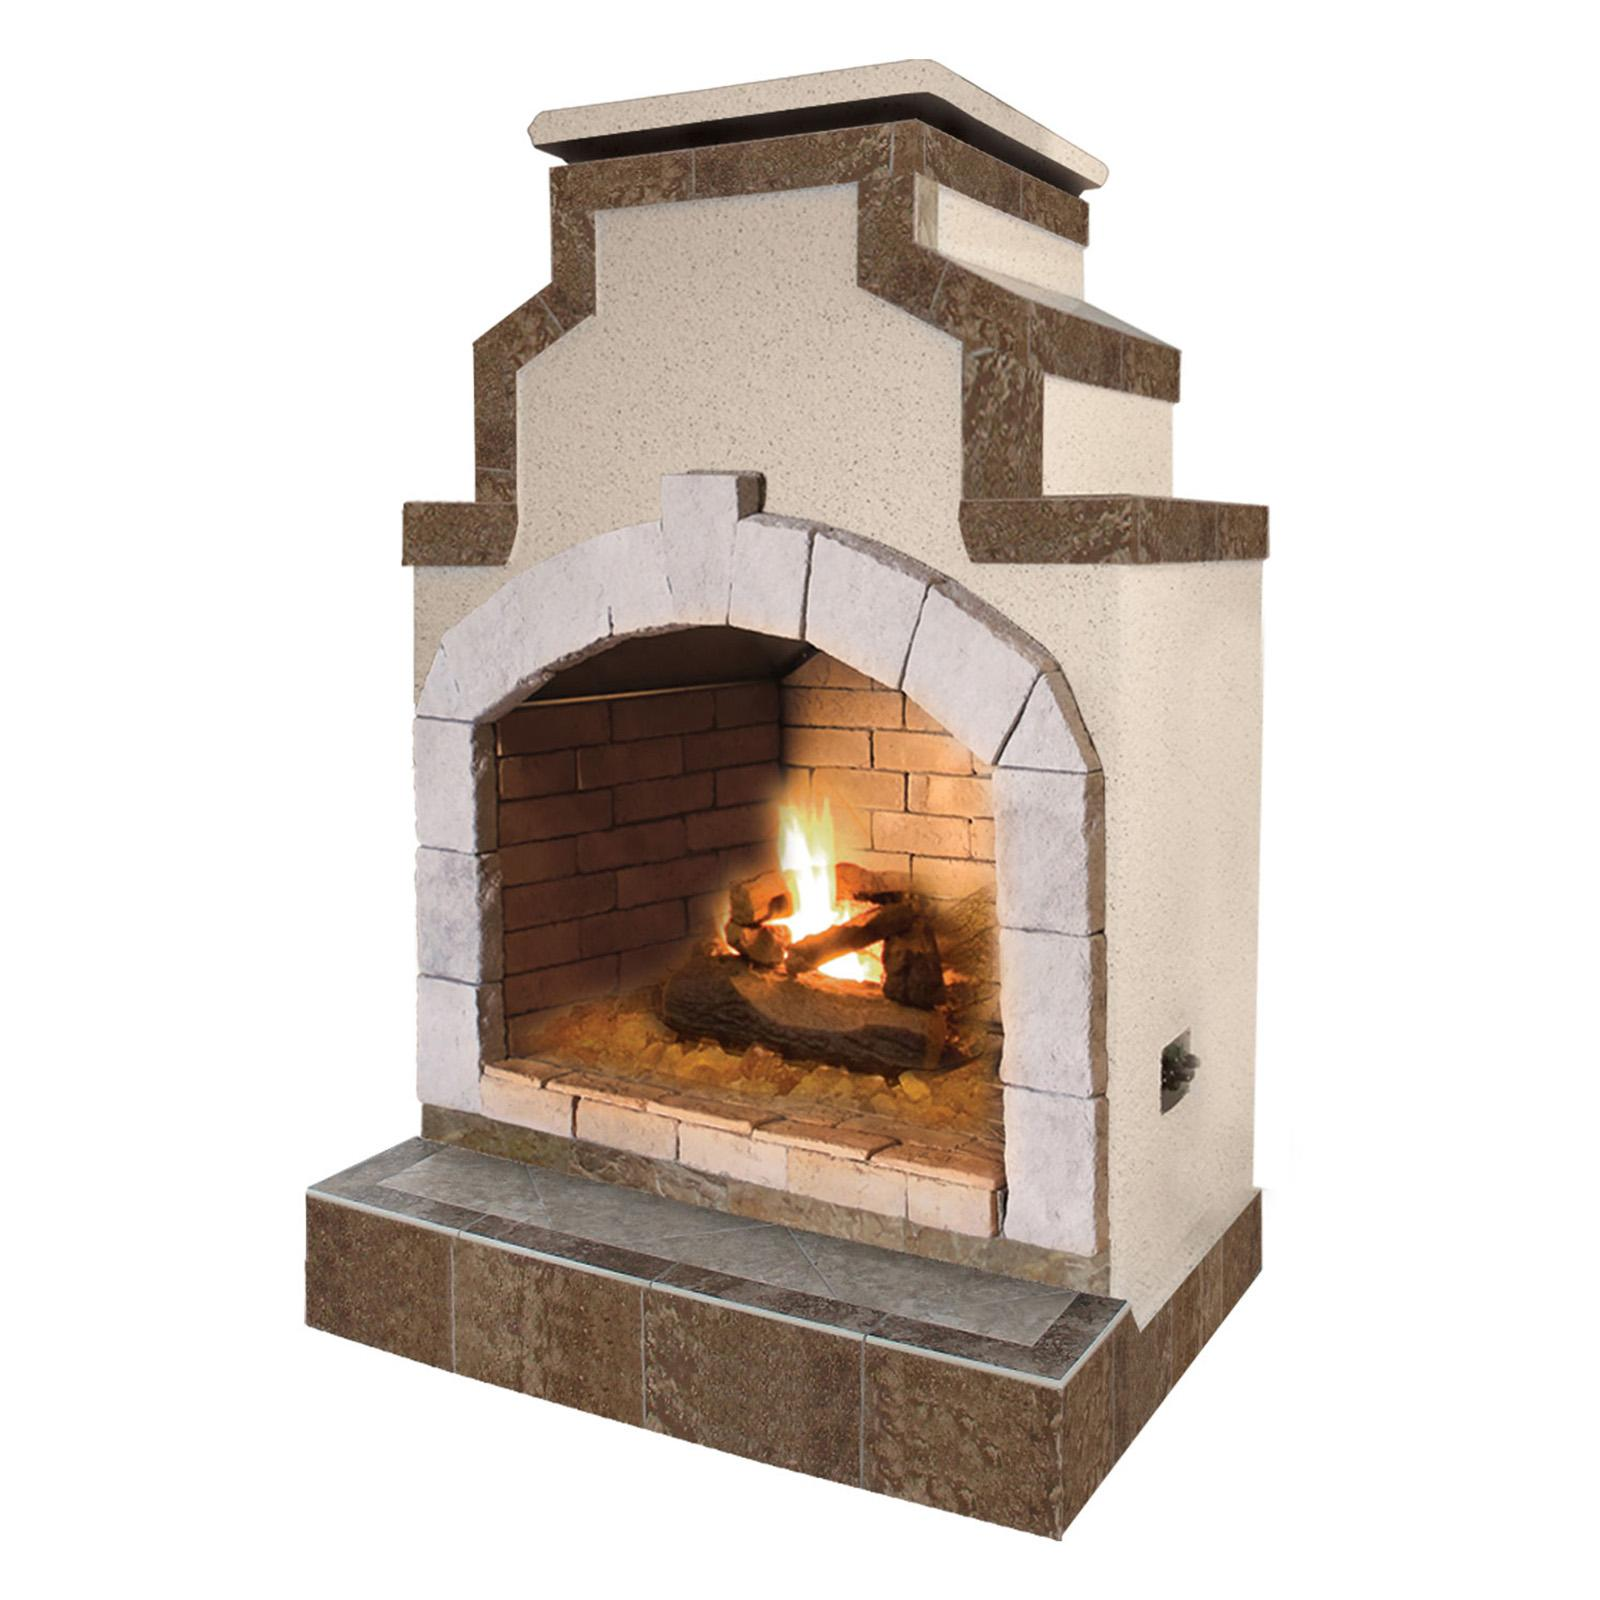 Cal Flame 48 in. Propane Gas Outdoor Fireplace in Porcelain Tile - FRP910-2-1